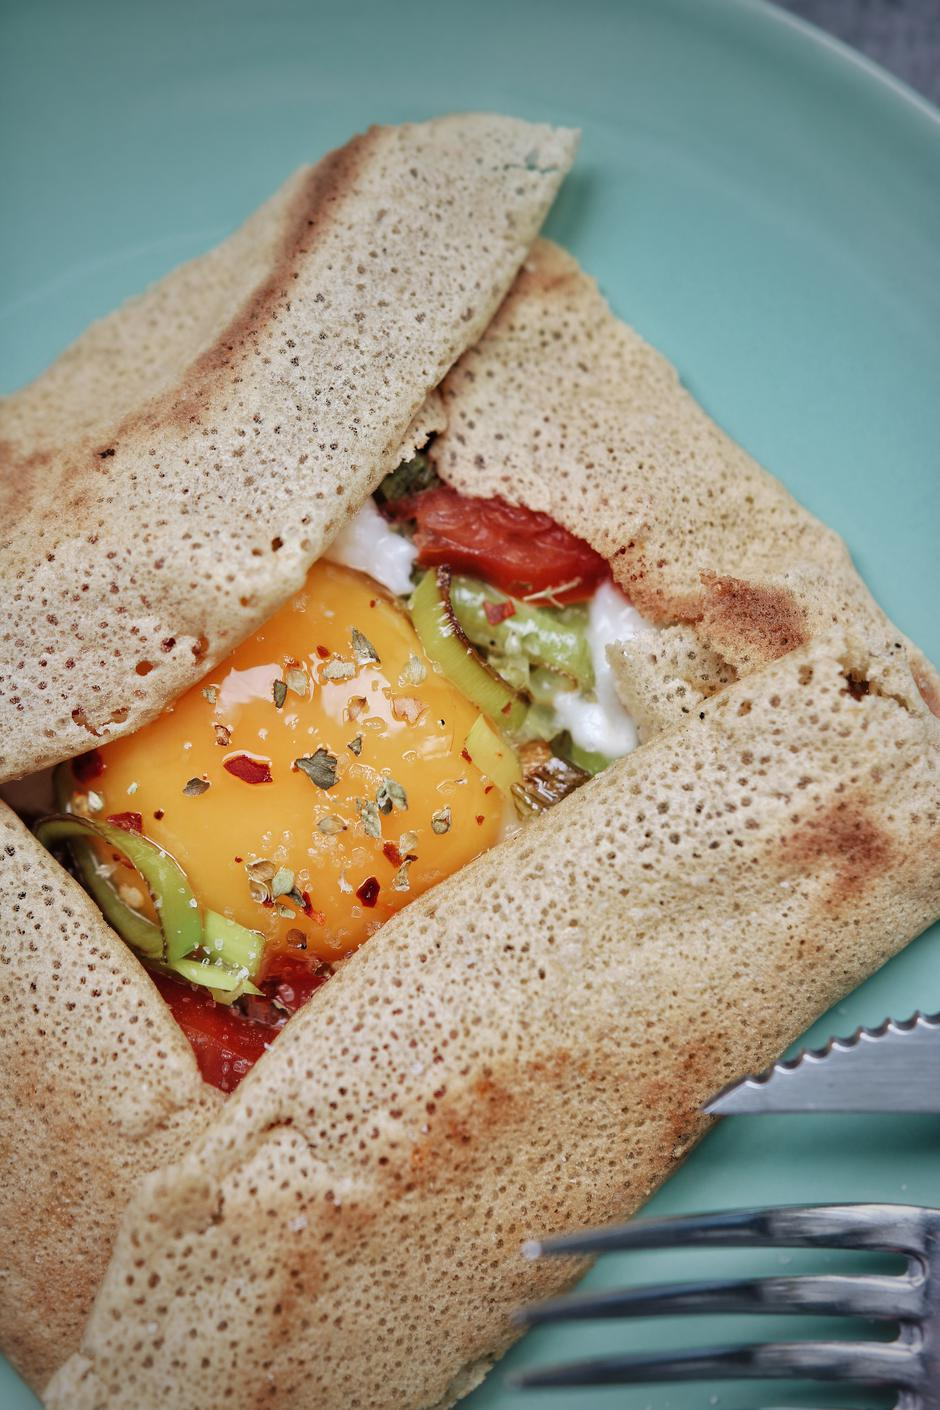 | Author: Laura Roman